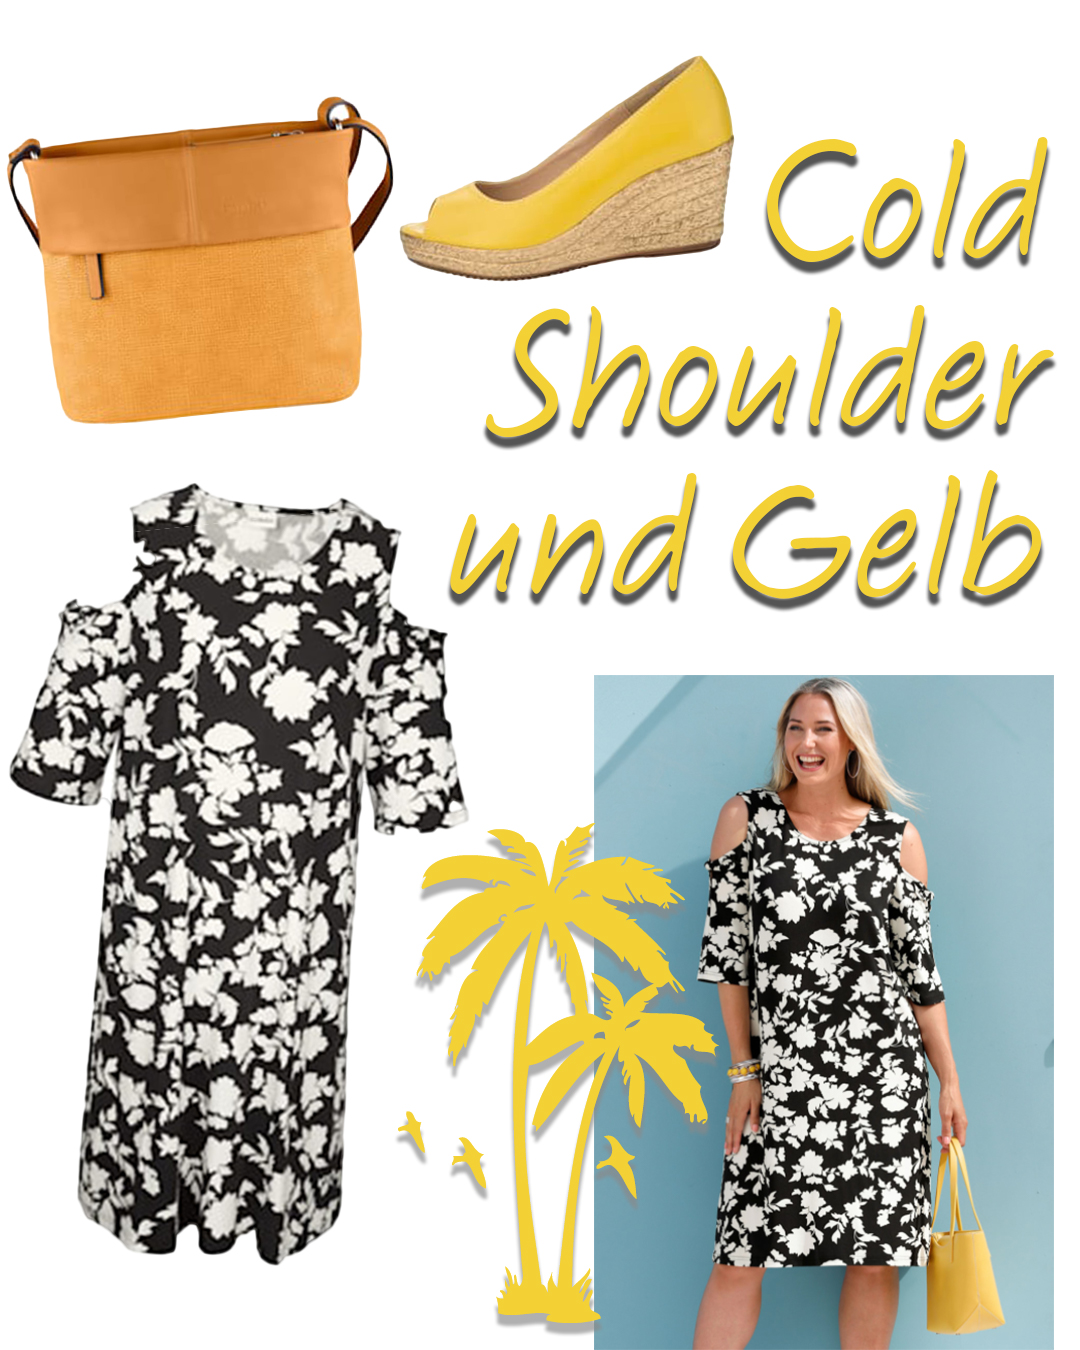 missesviolet-curvy-fashion-curvy-sommer-outfits-fuer-den-alltag-mit-miamoda-coldshoulder-collage